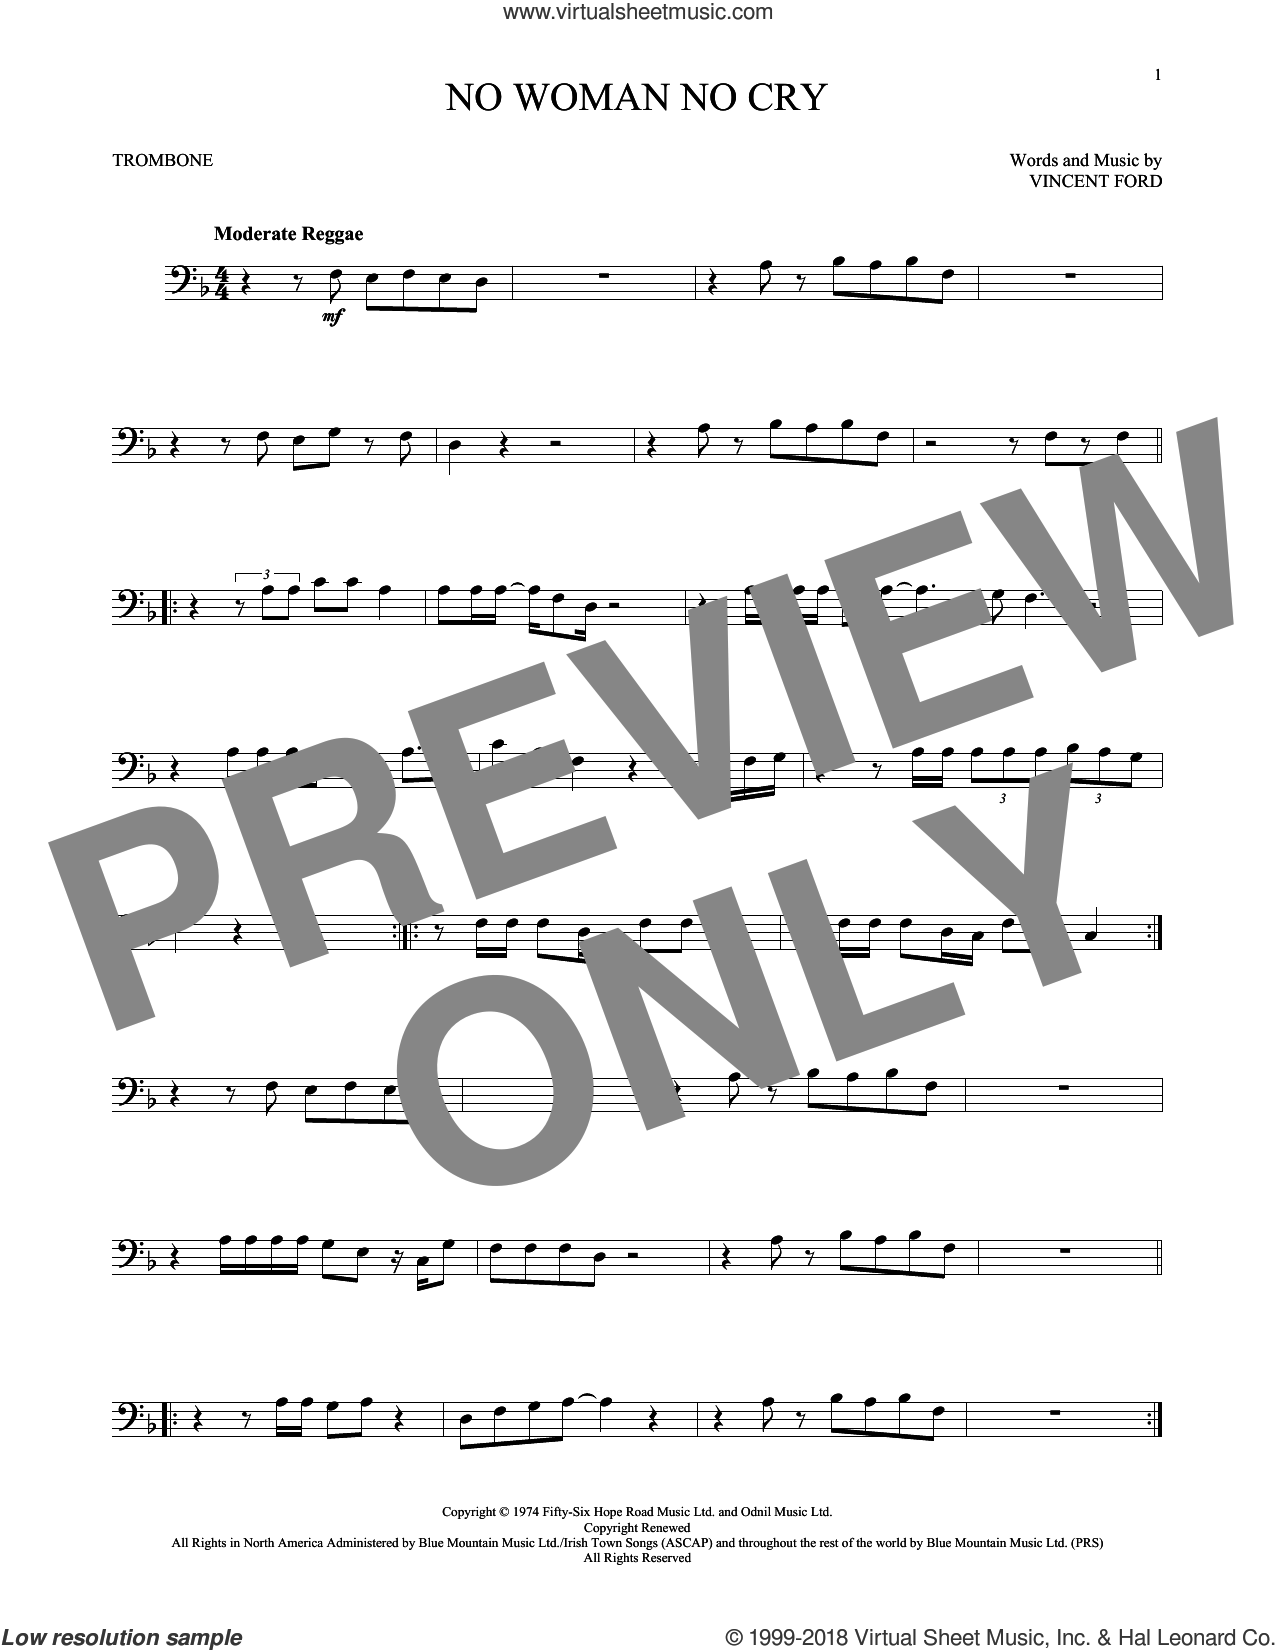 No Woman No Cry sheet music for trombone solo by Bob Marley and Vincent Ford, intermediate skill level